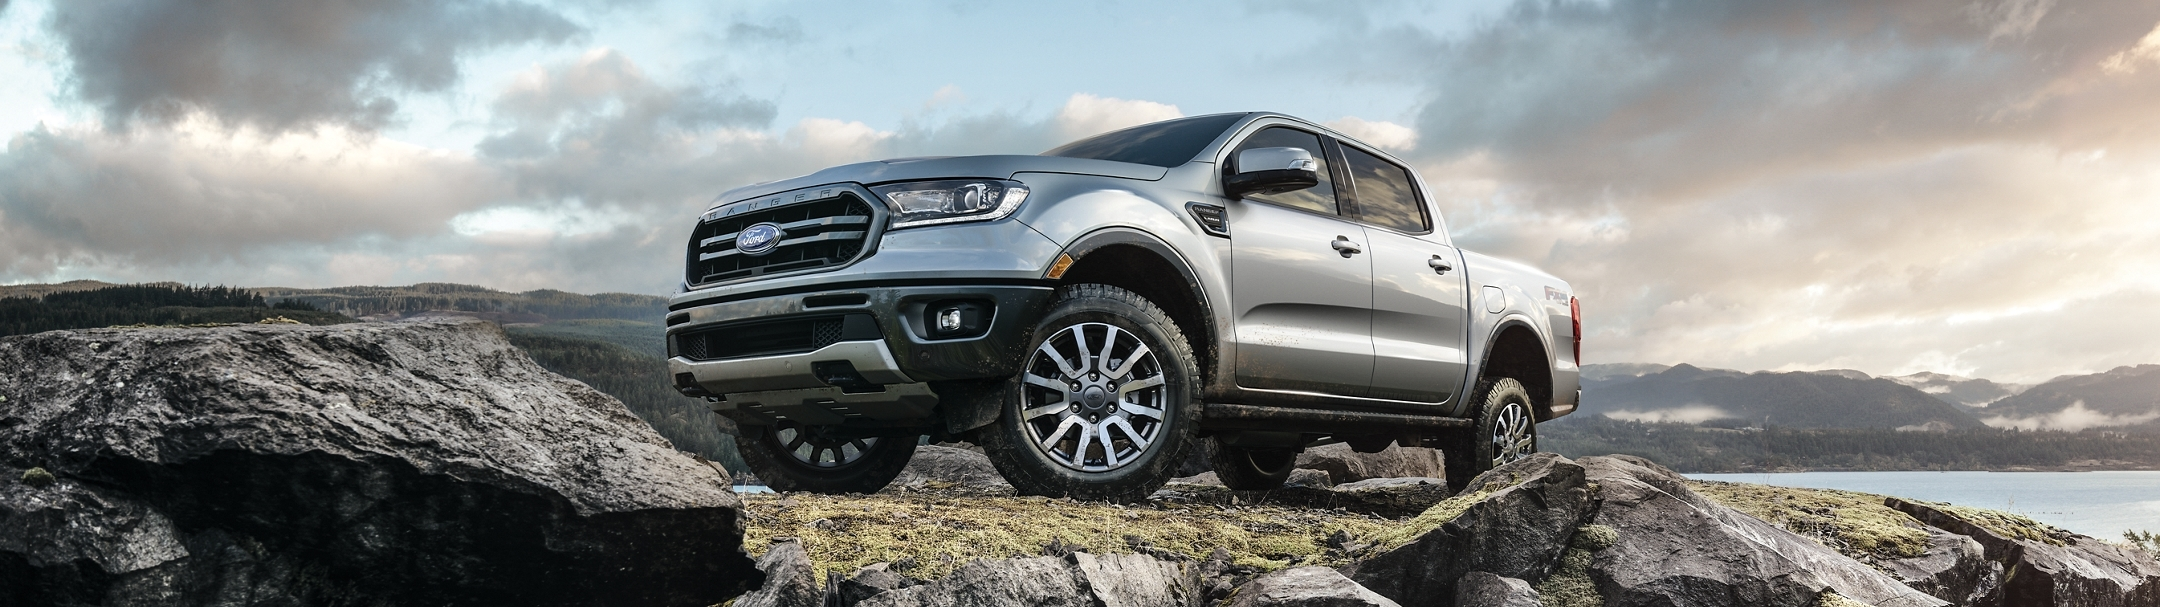 2020 Ford Ranger for Sale near Chicago, IL